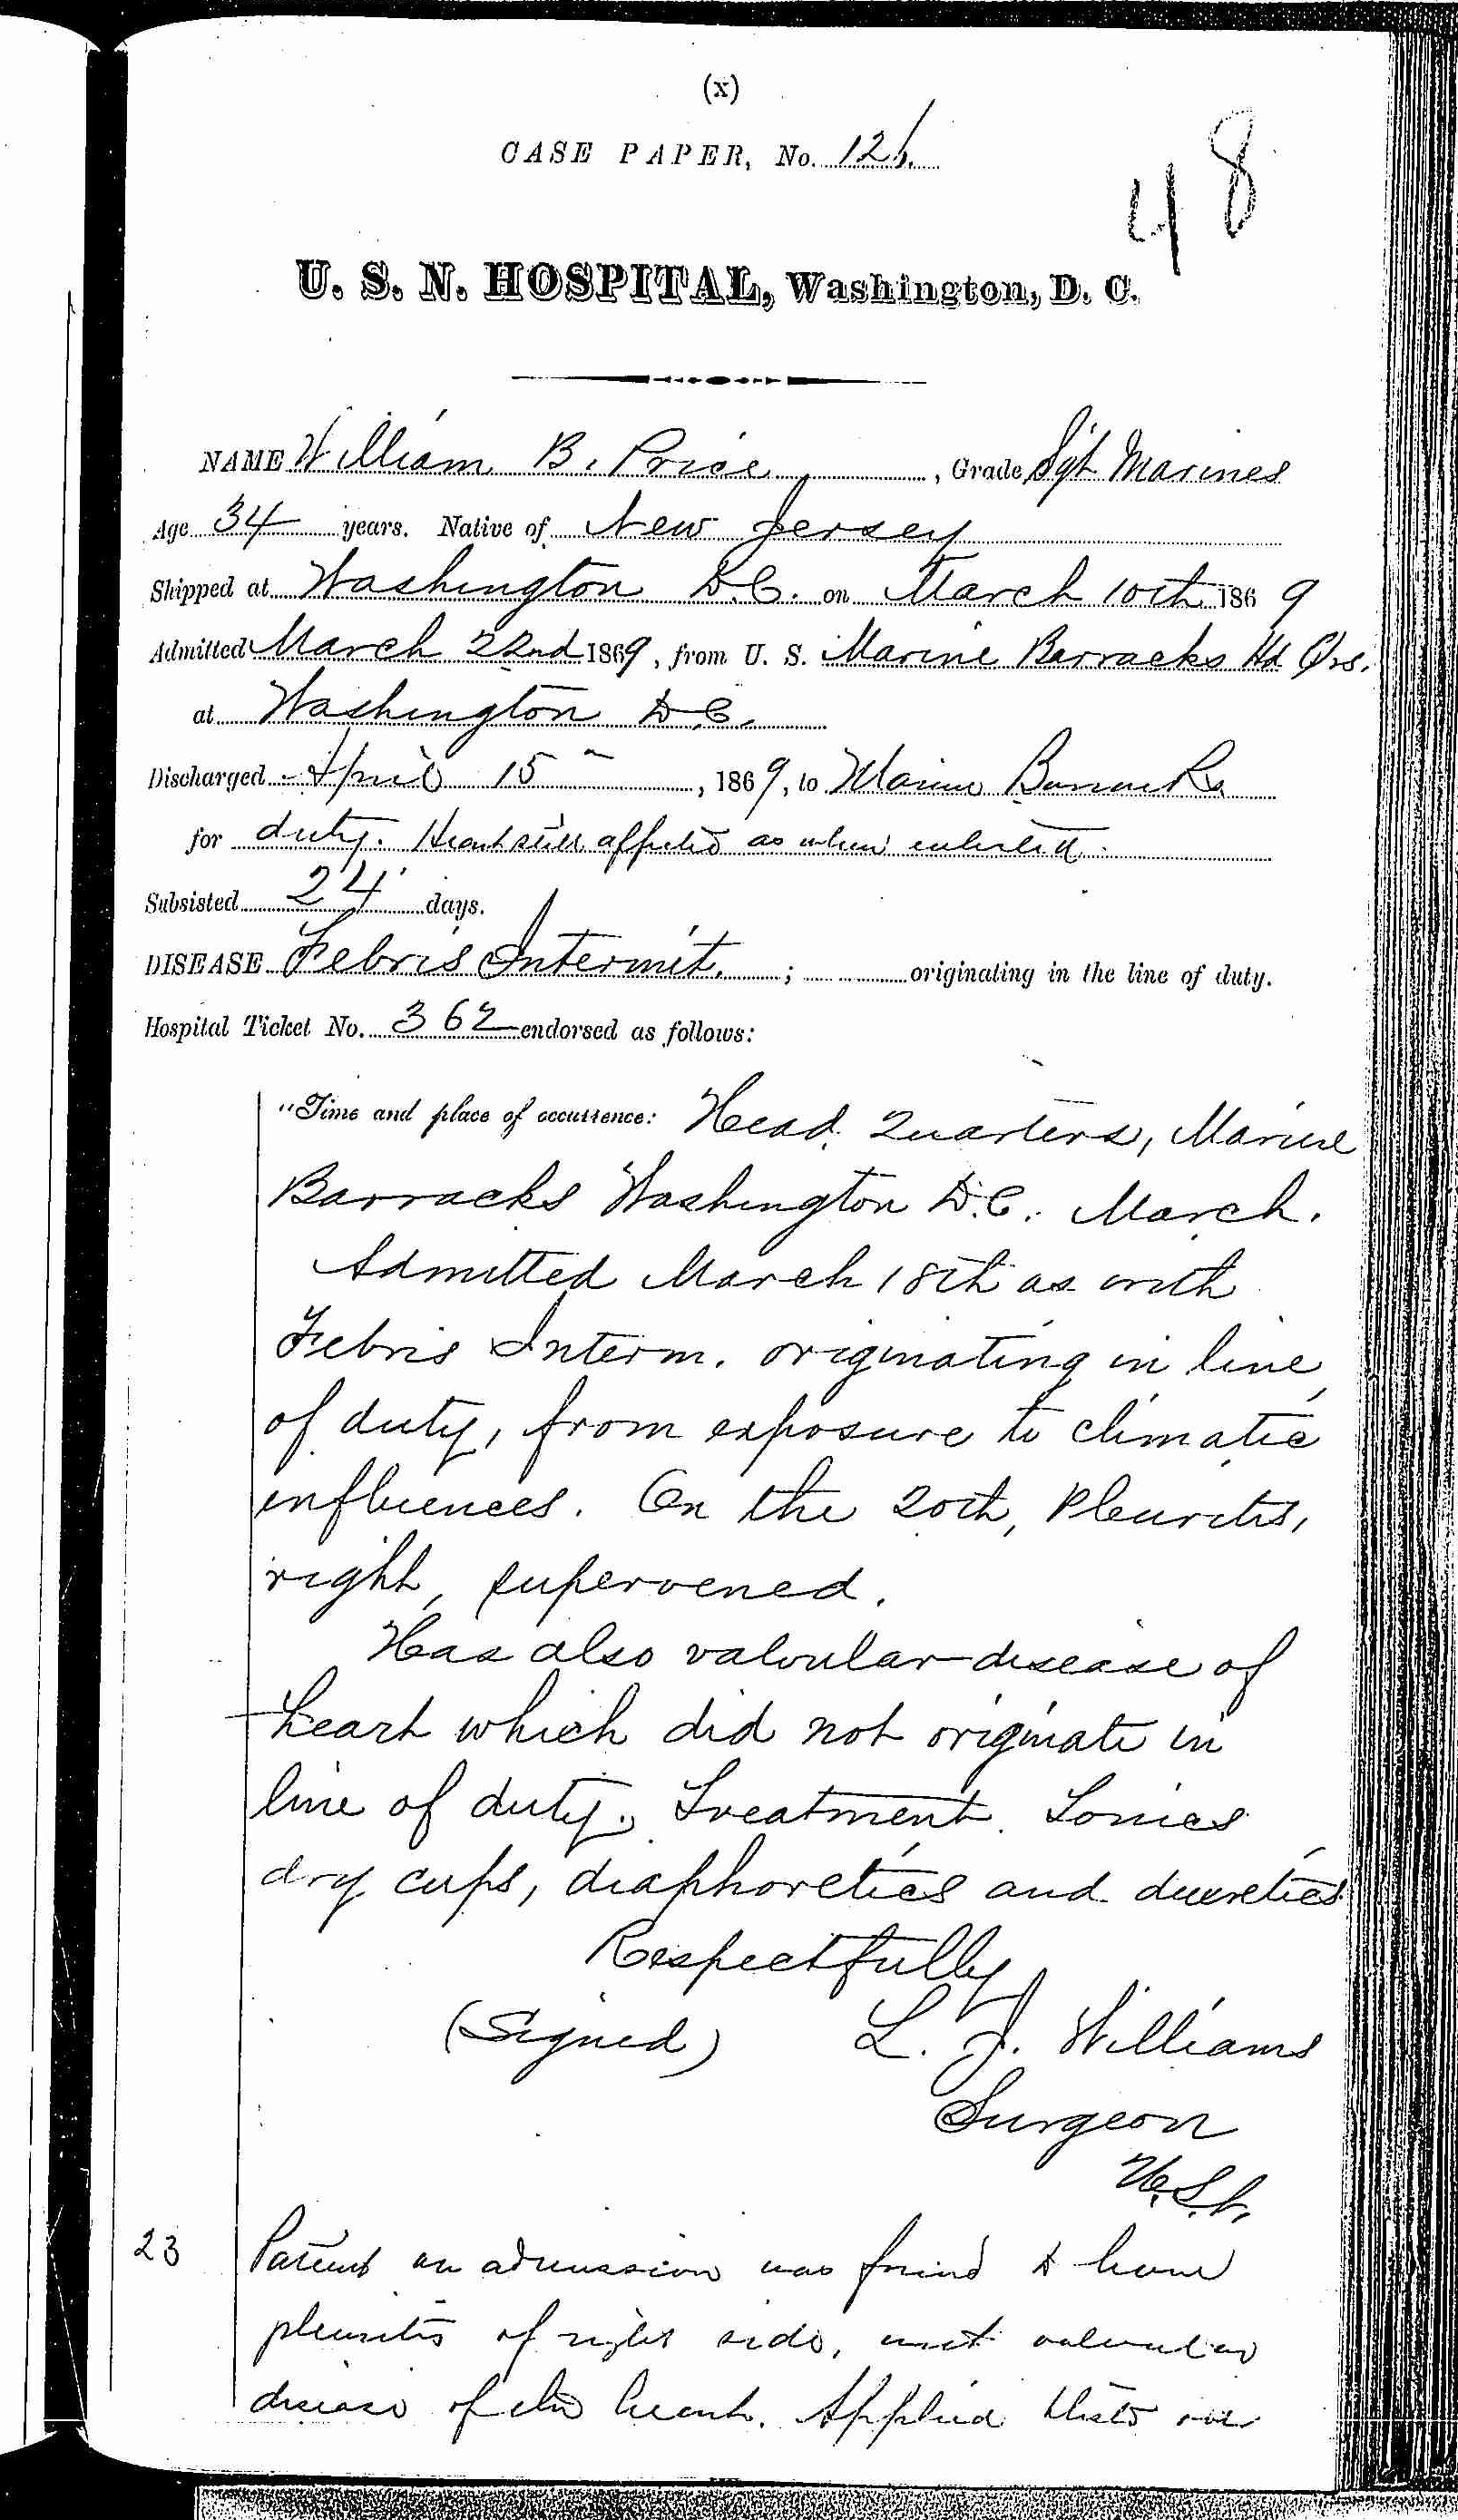 Entry for William B. Price (page 1 of 3) in the log Hospital Tickets and Case Papers - Naval Hospital - Washington, D.C. - 1868-69